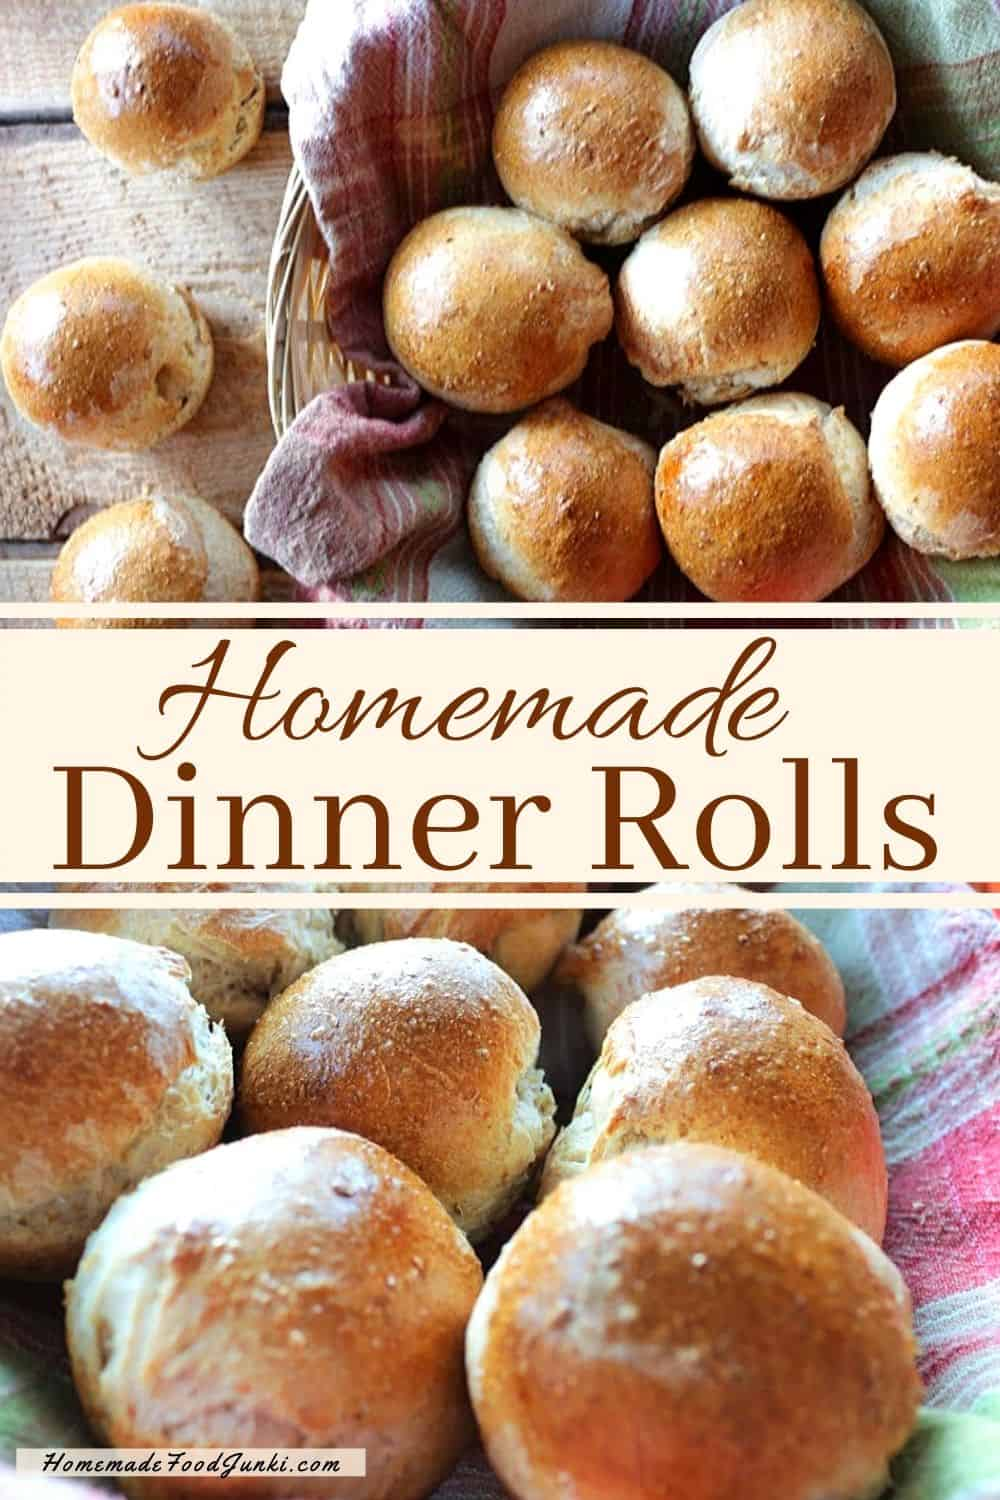 Homemade Dinner Rolls-pin image